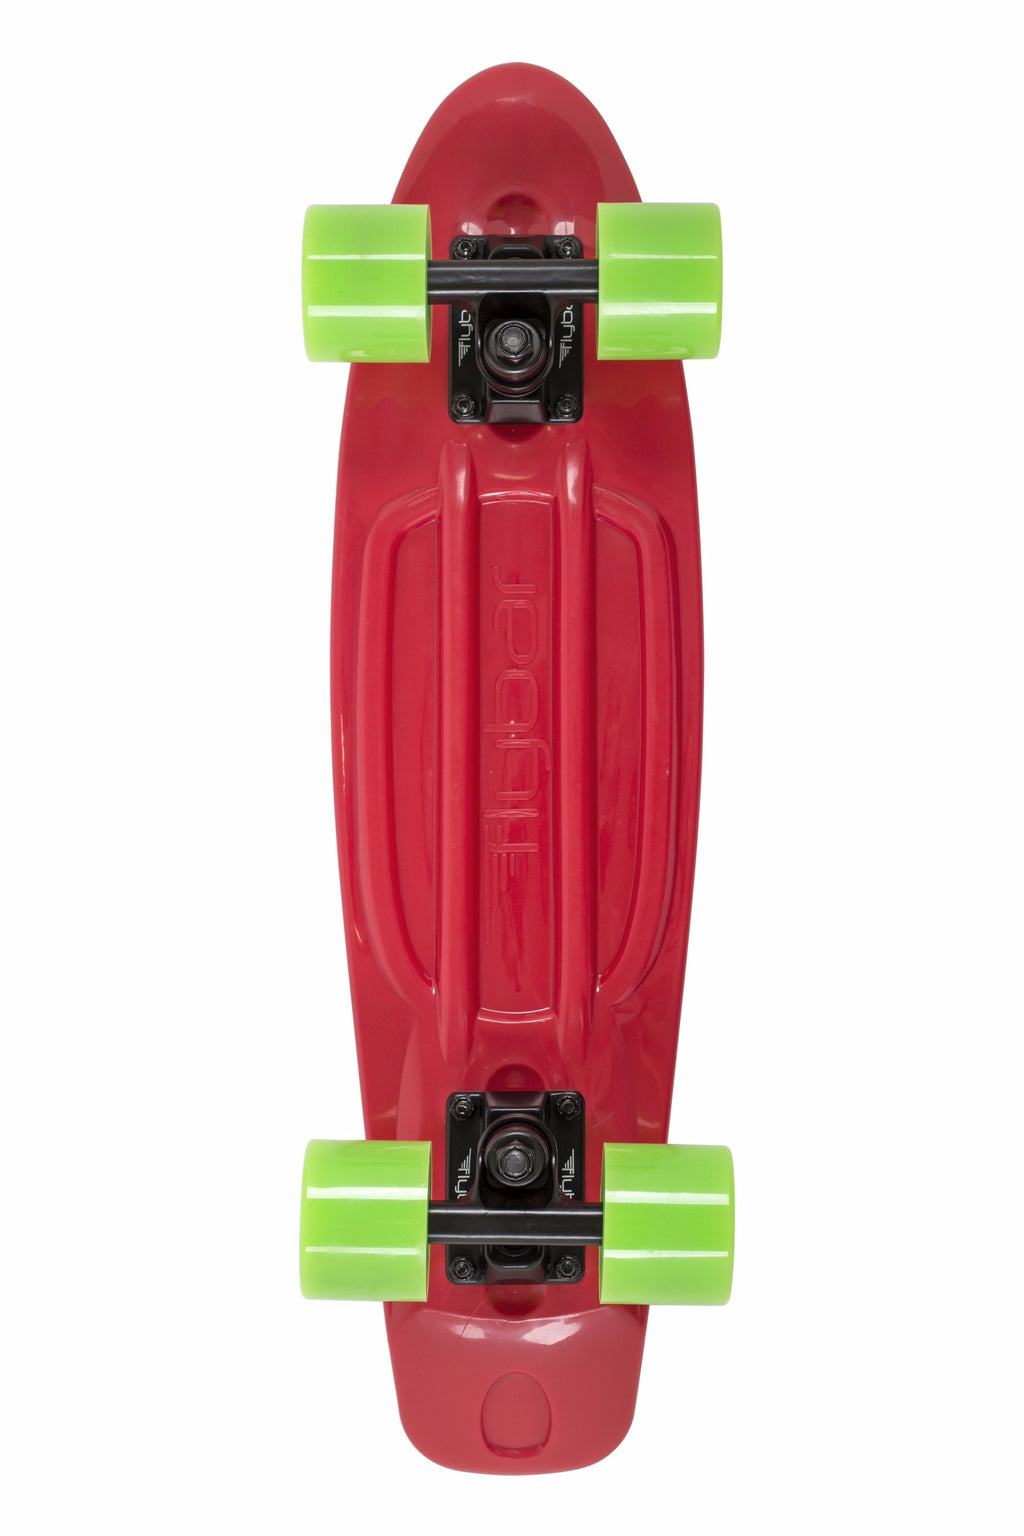 "Flybar 22"" Complete Plastic Cruiser Skateboards- Red, Green - Da Da Kinder Store"